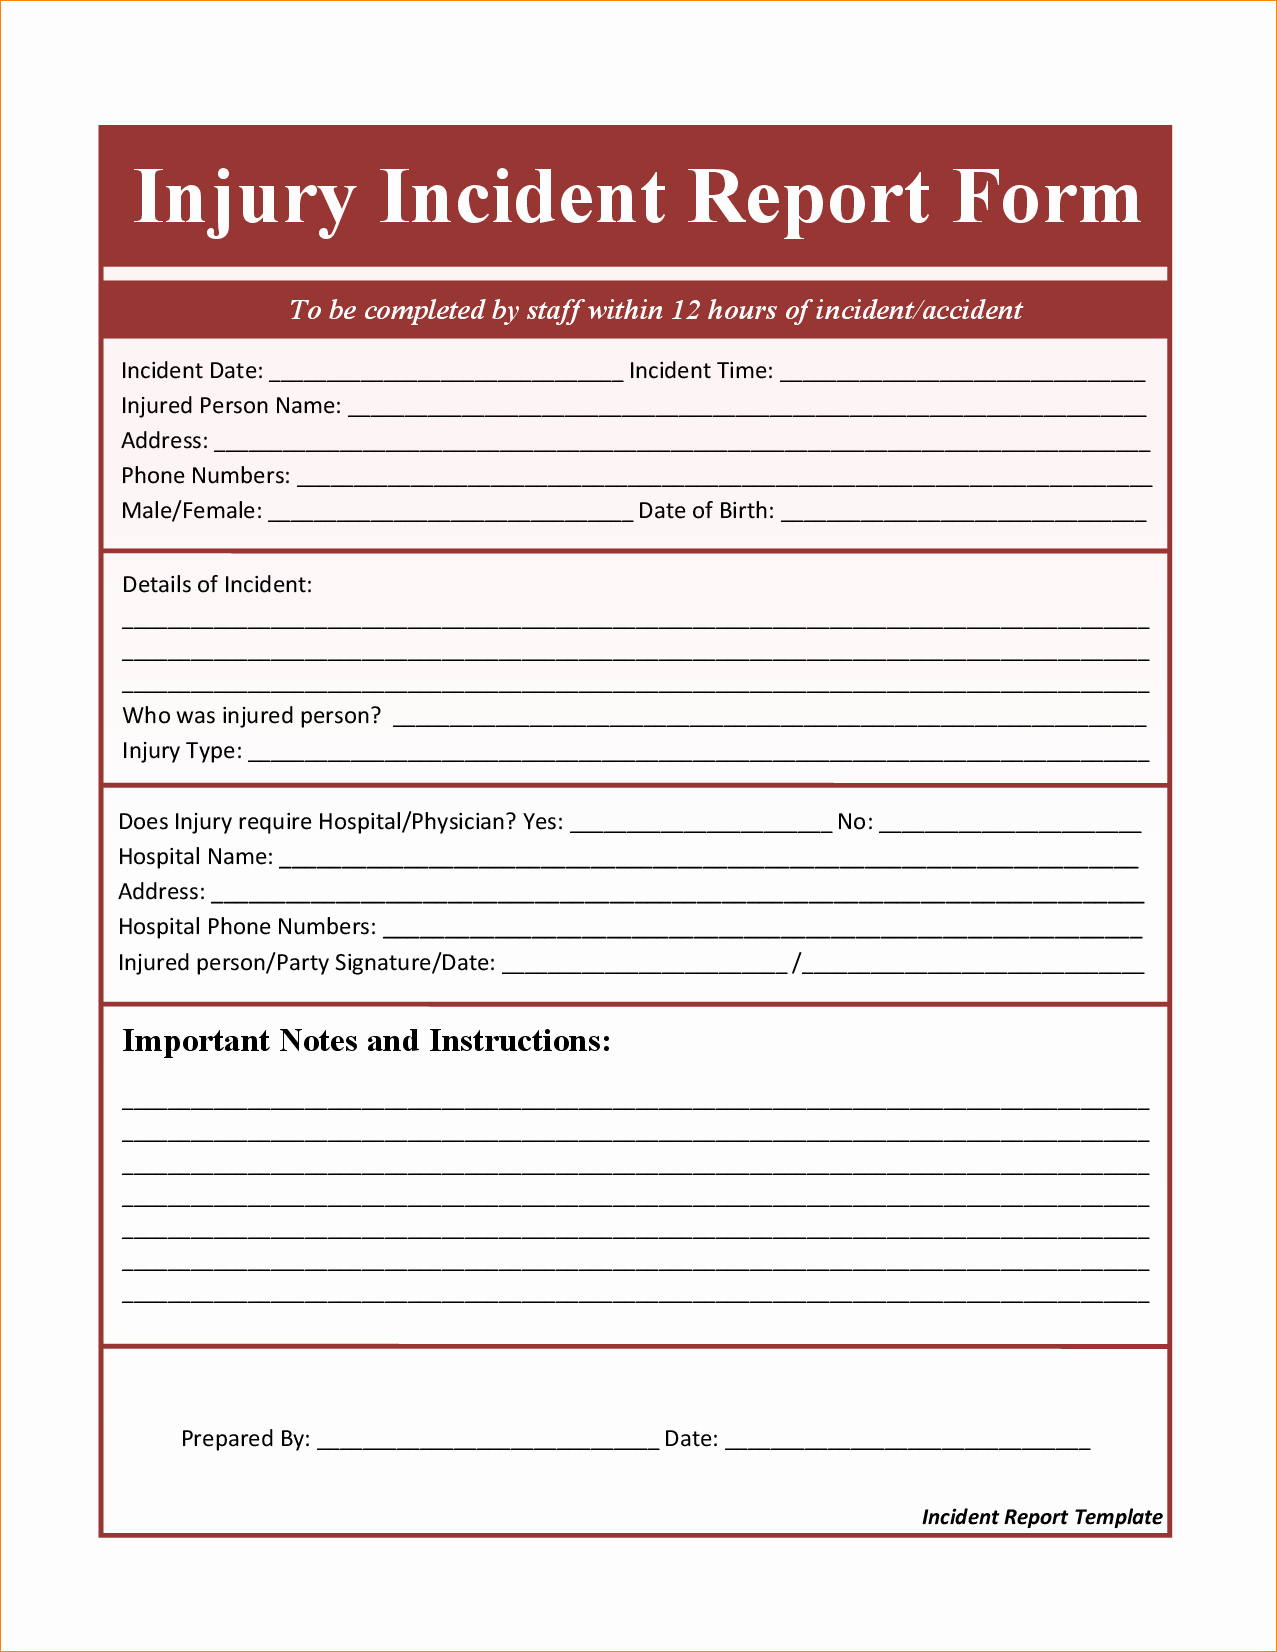 Incident Report Template Microsoft Awesome Incident Report Template Microsoft Word